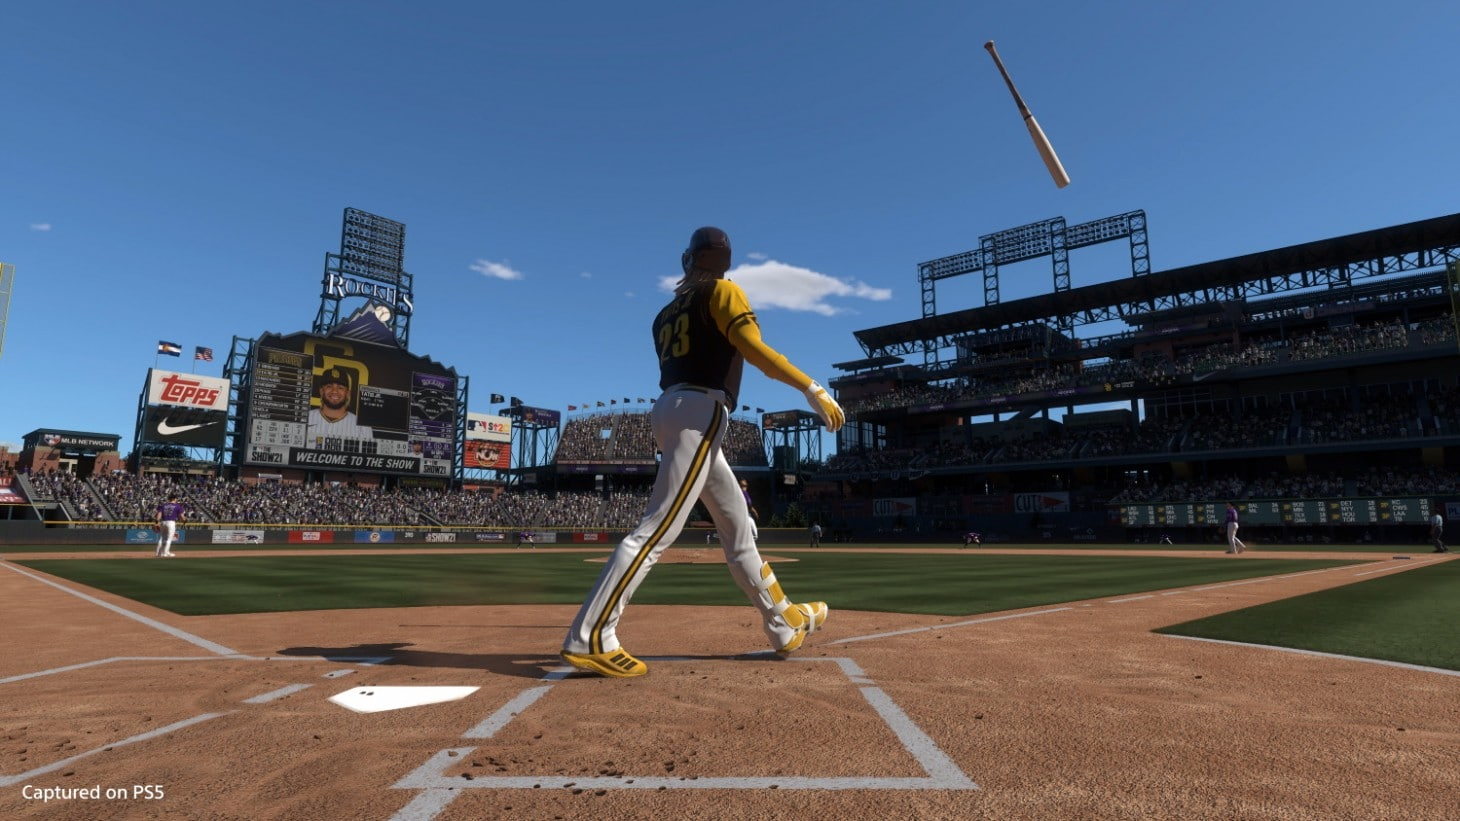 mlb the show 21 update 1.17